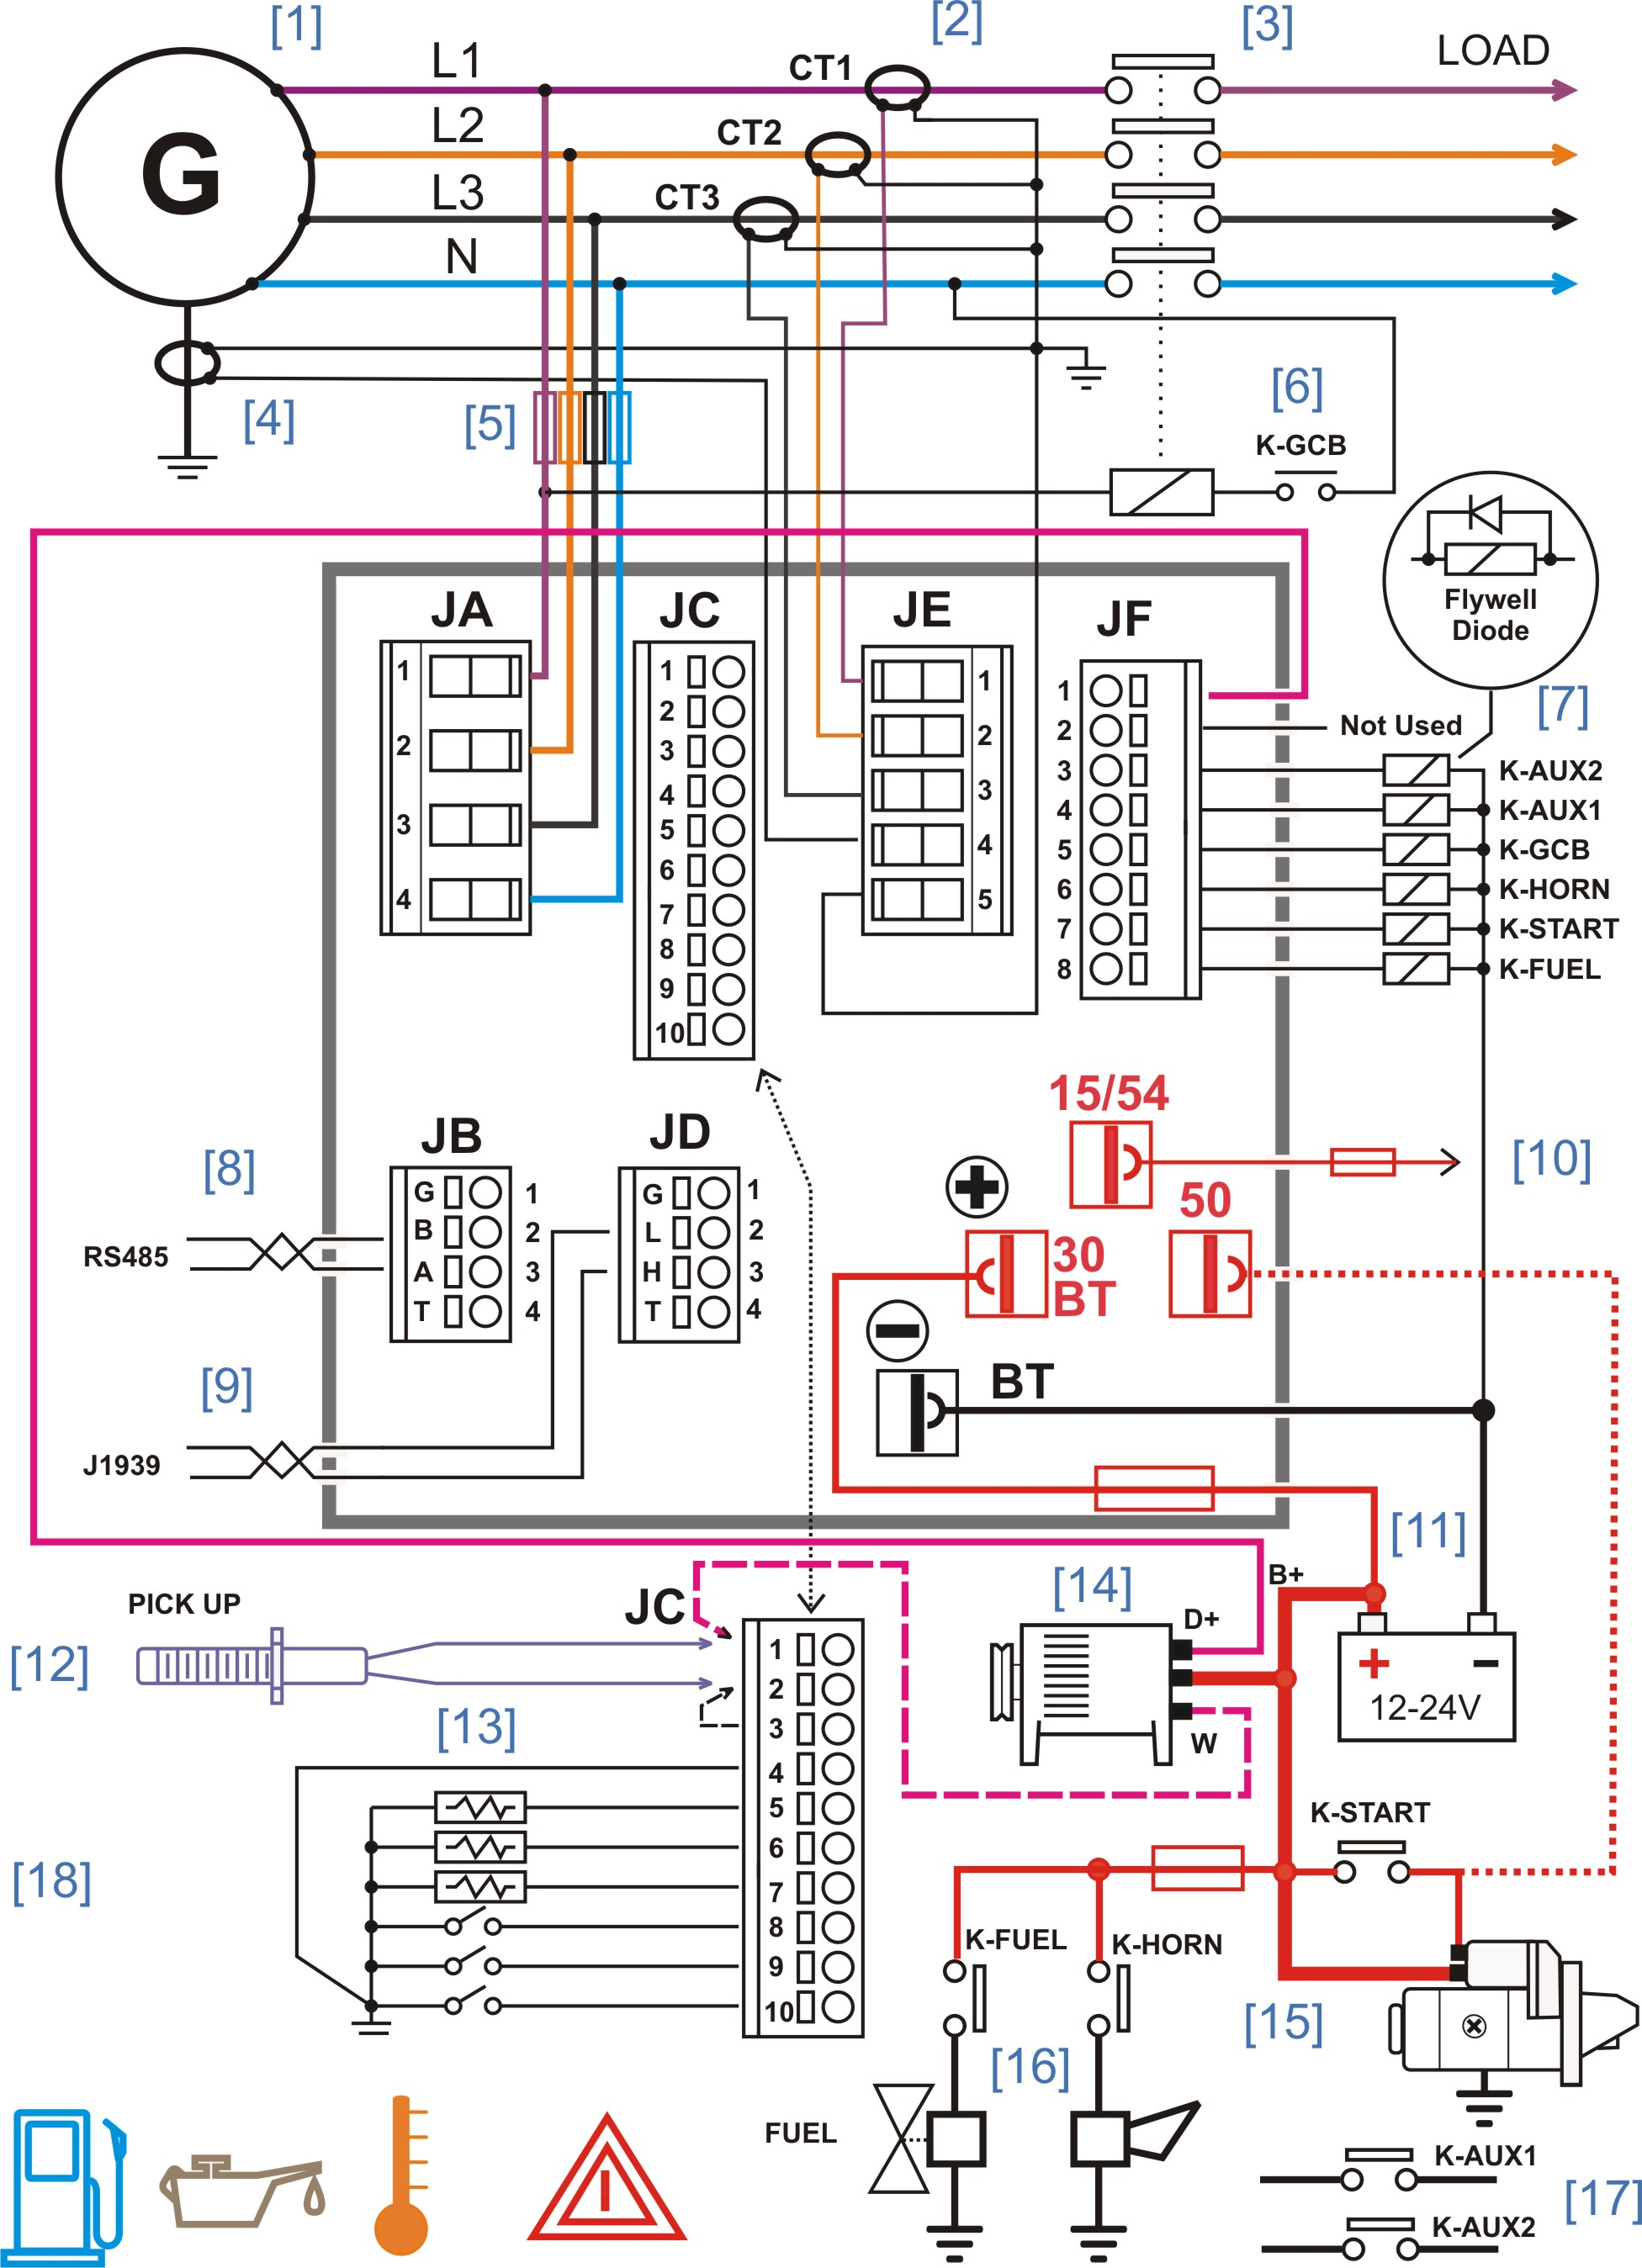 hight resolution of genset generators wiring diagram wiring diagram new generator controller wiring diagram generator controllers genset generator wiring